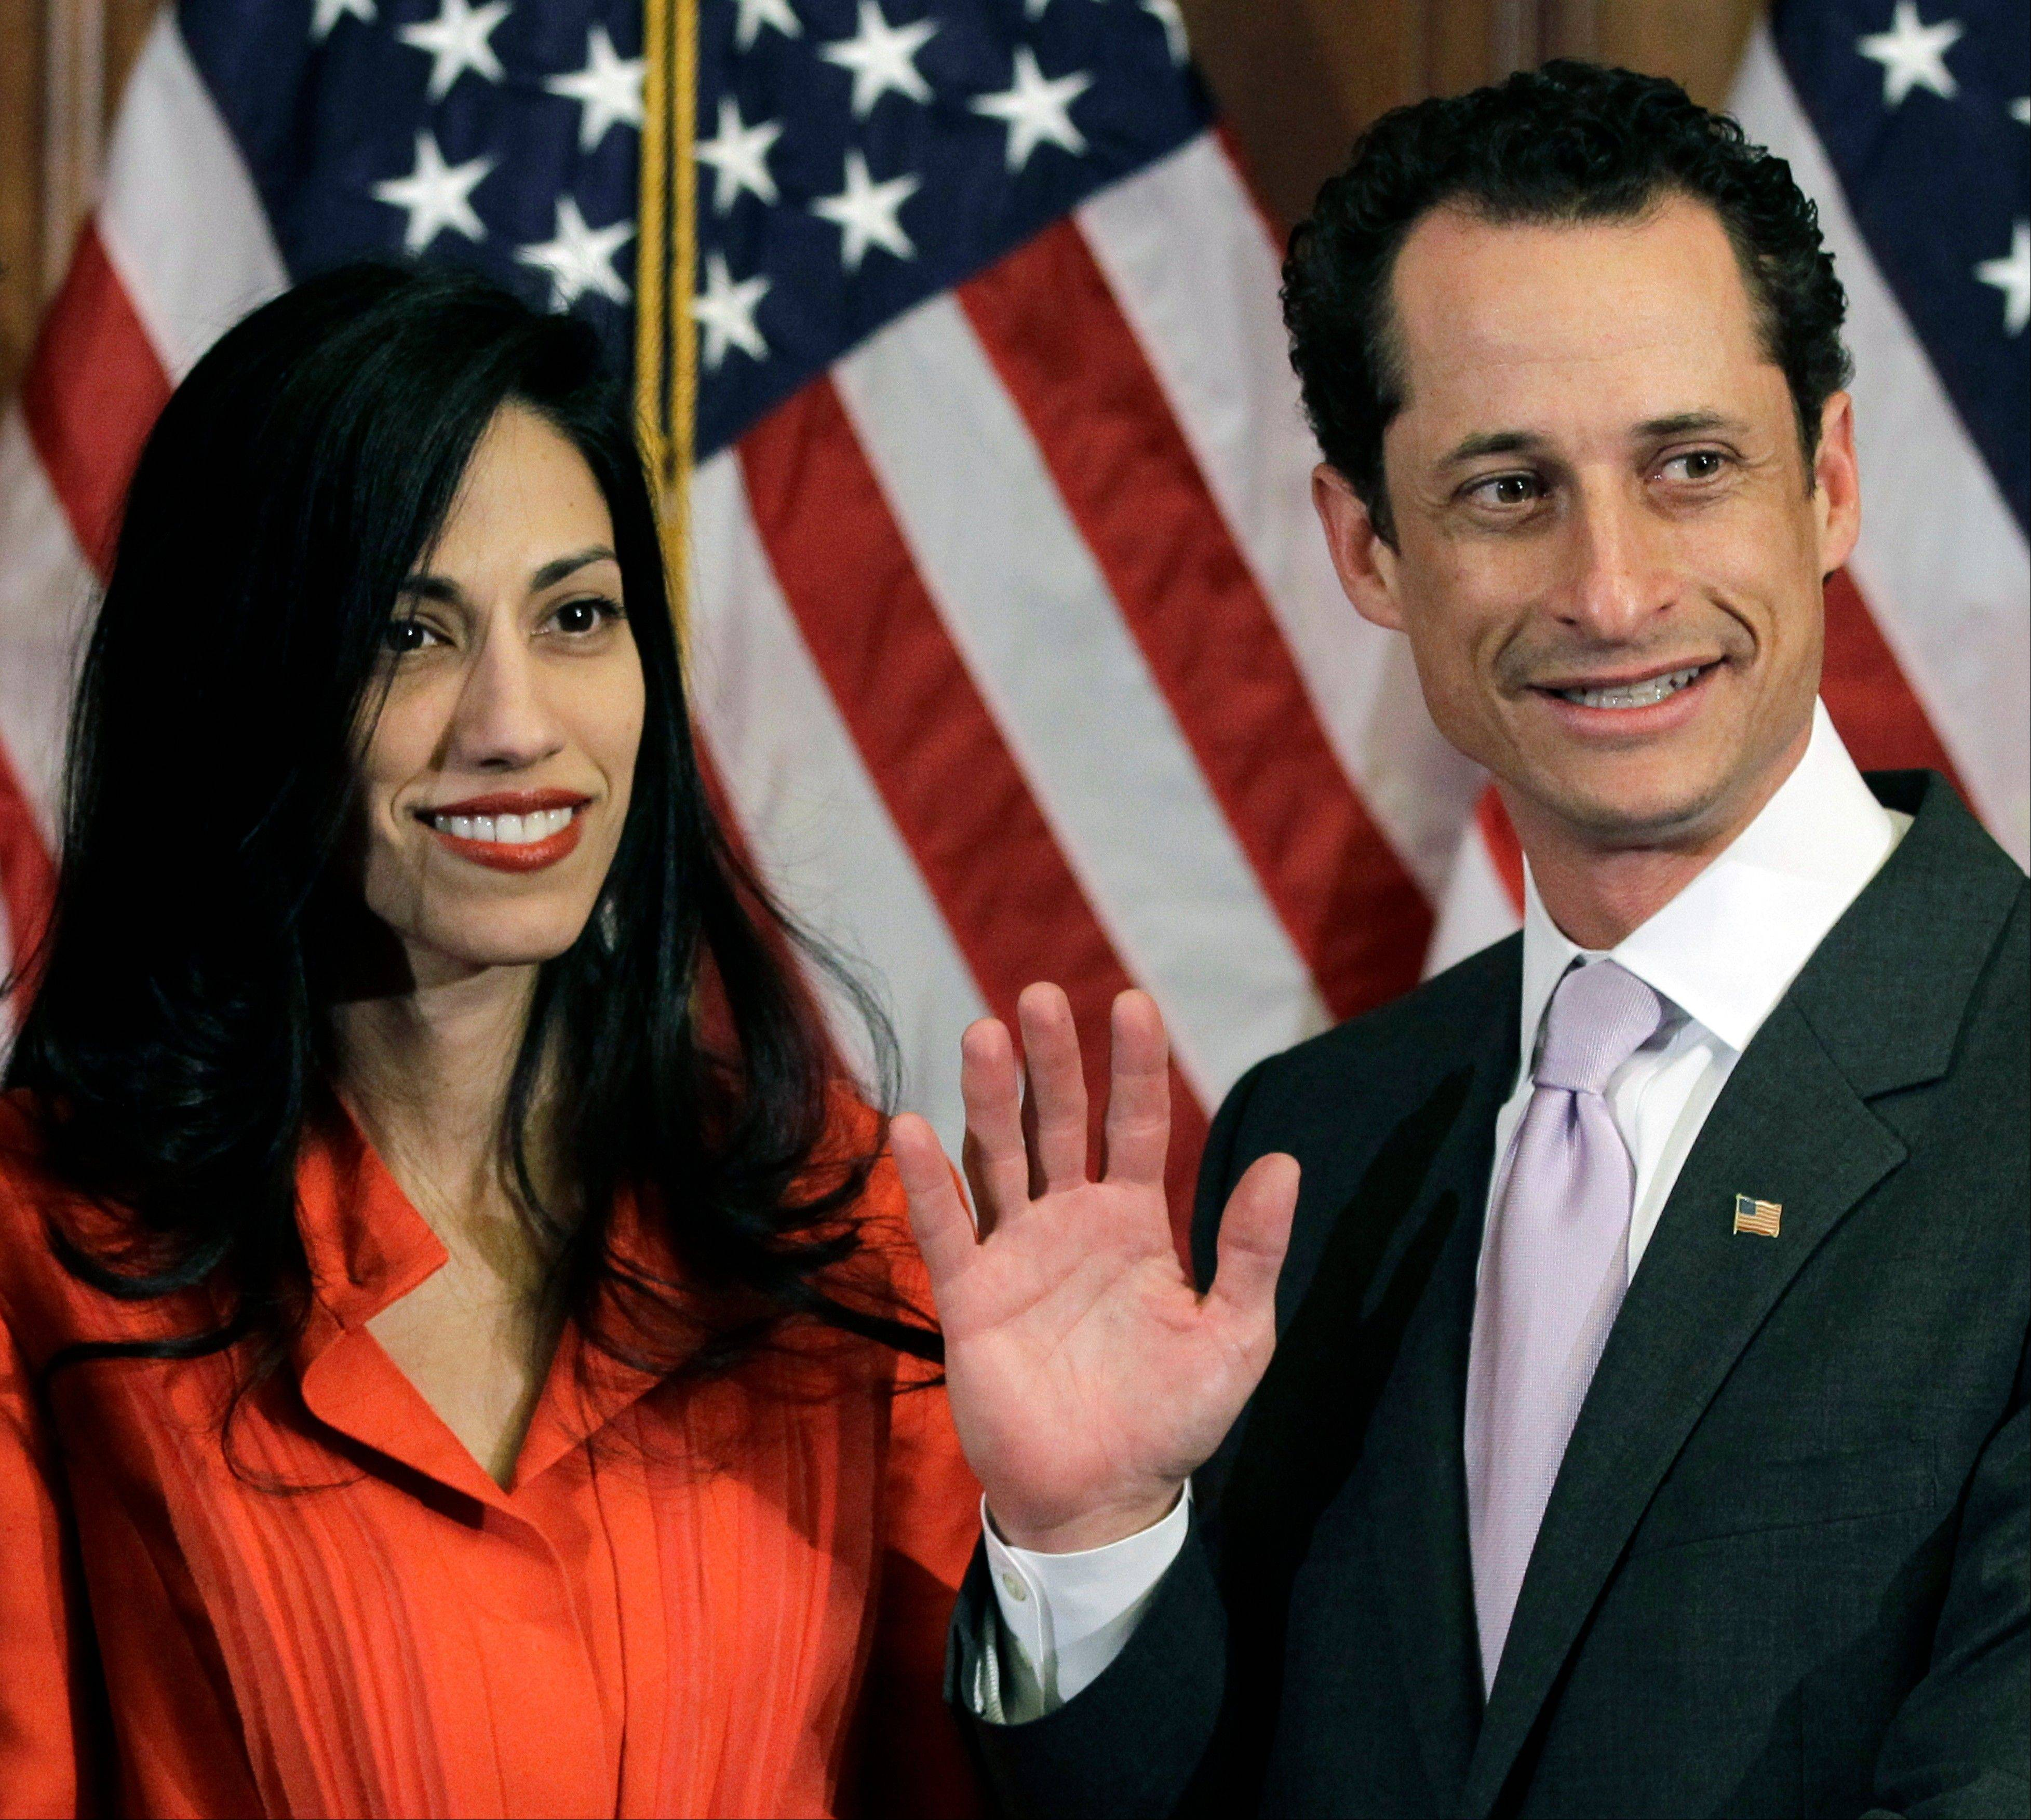 Weiner admits to more lewd photos